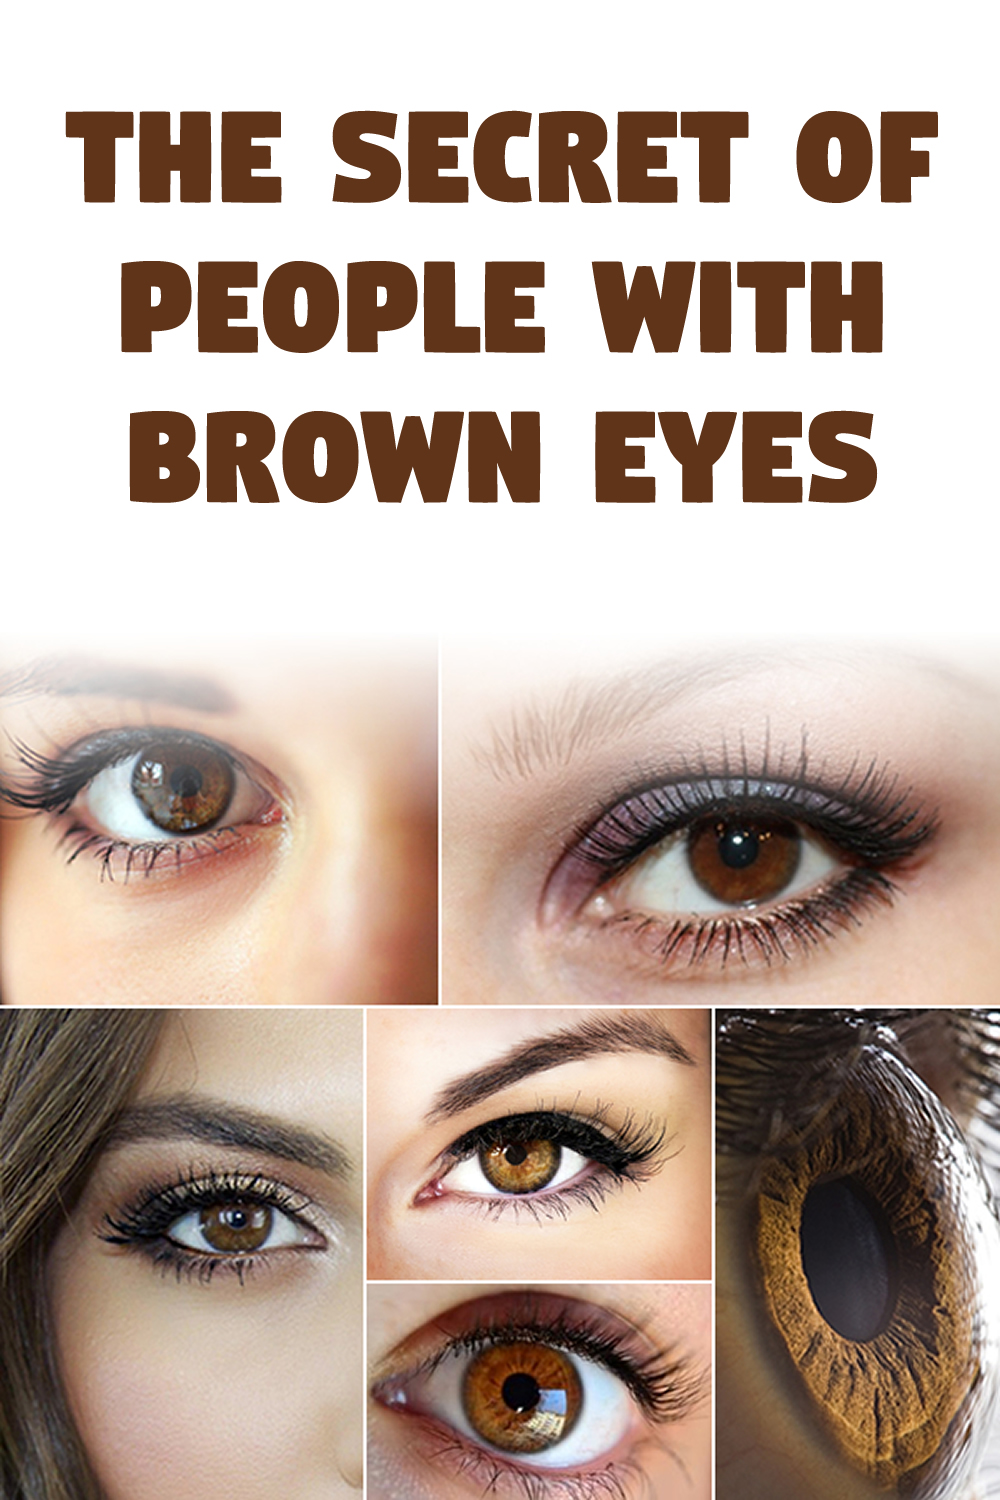 The secret of people with brown eyes